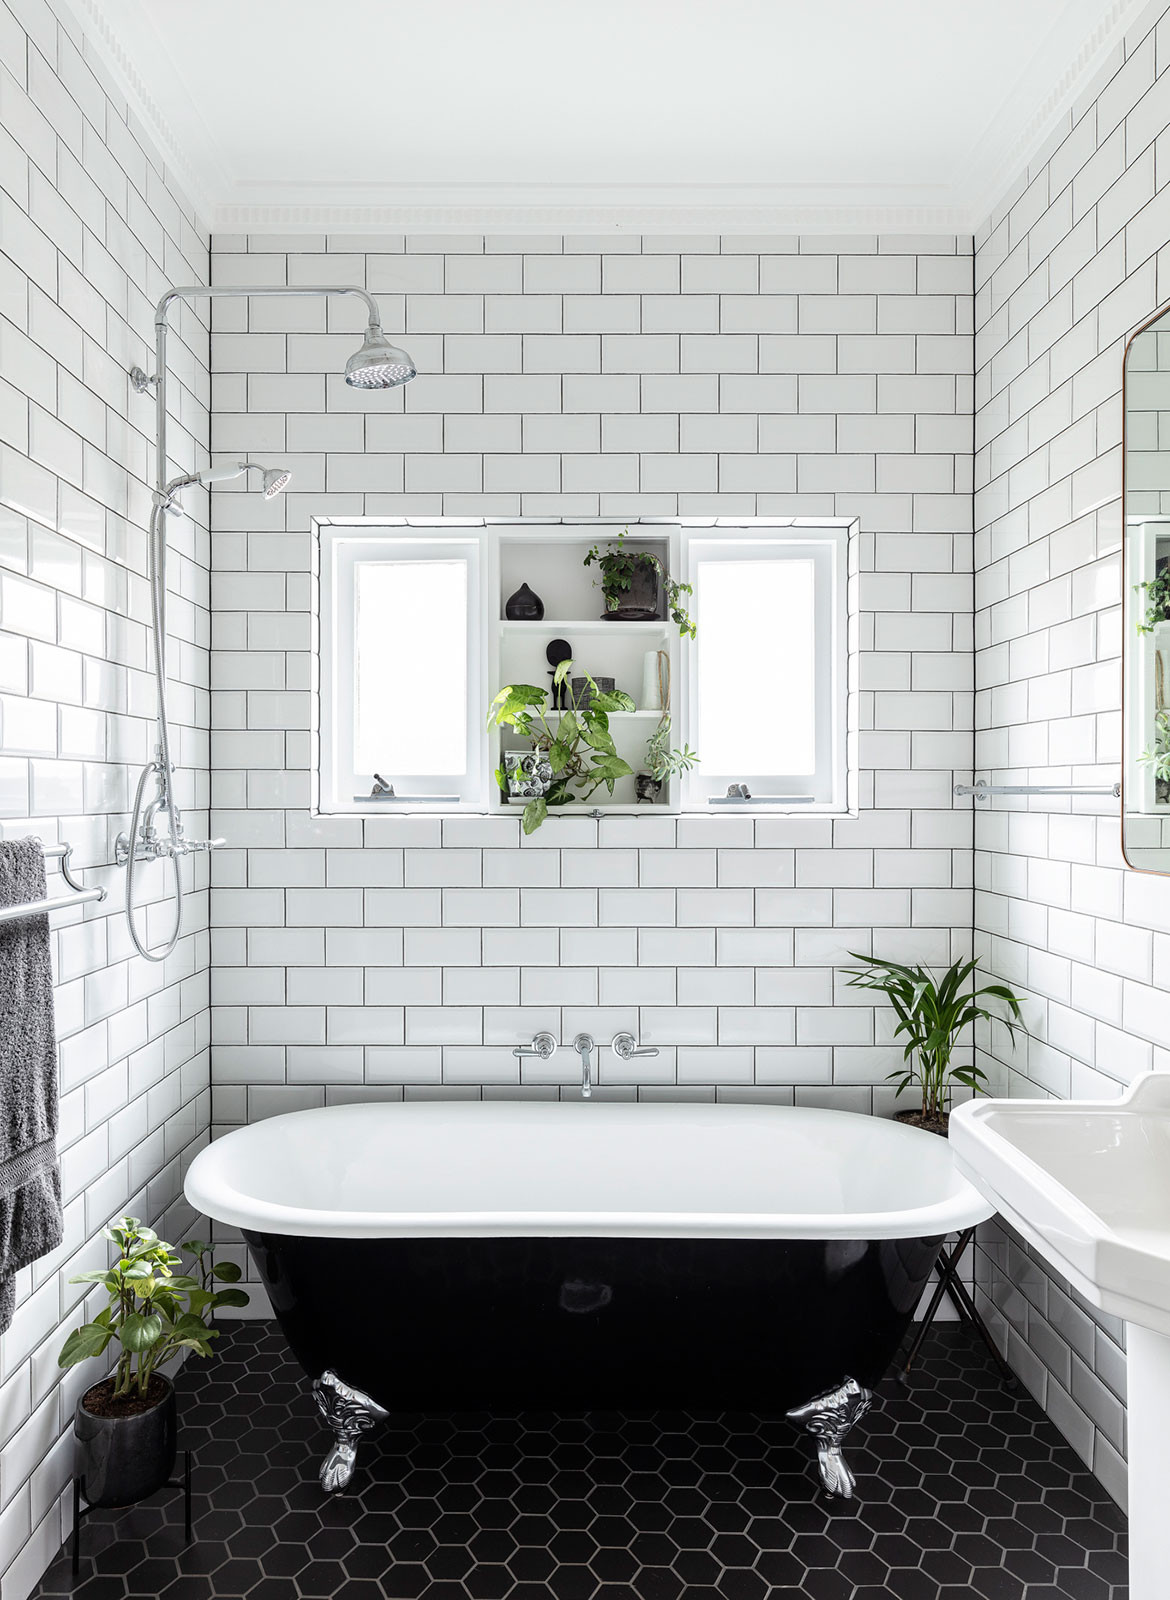 Collectors Cottage Mark Szczerbicki Design Studio CC Tom Ferguson bathroom